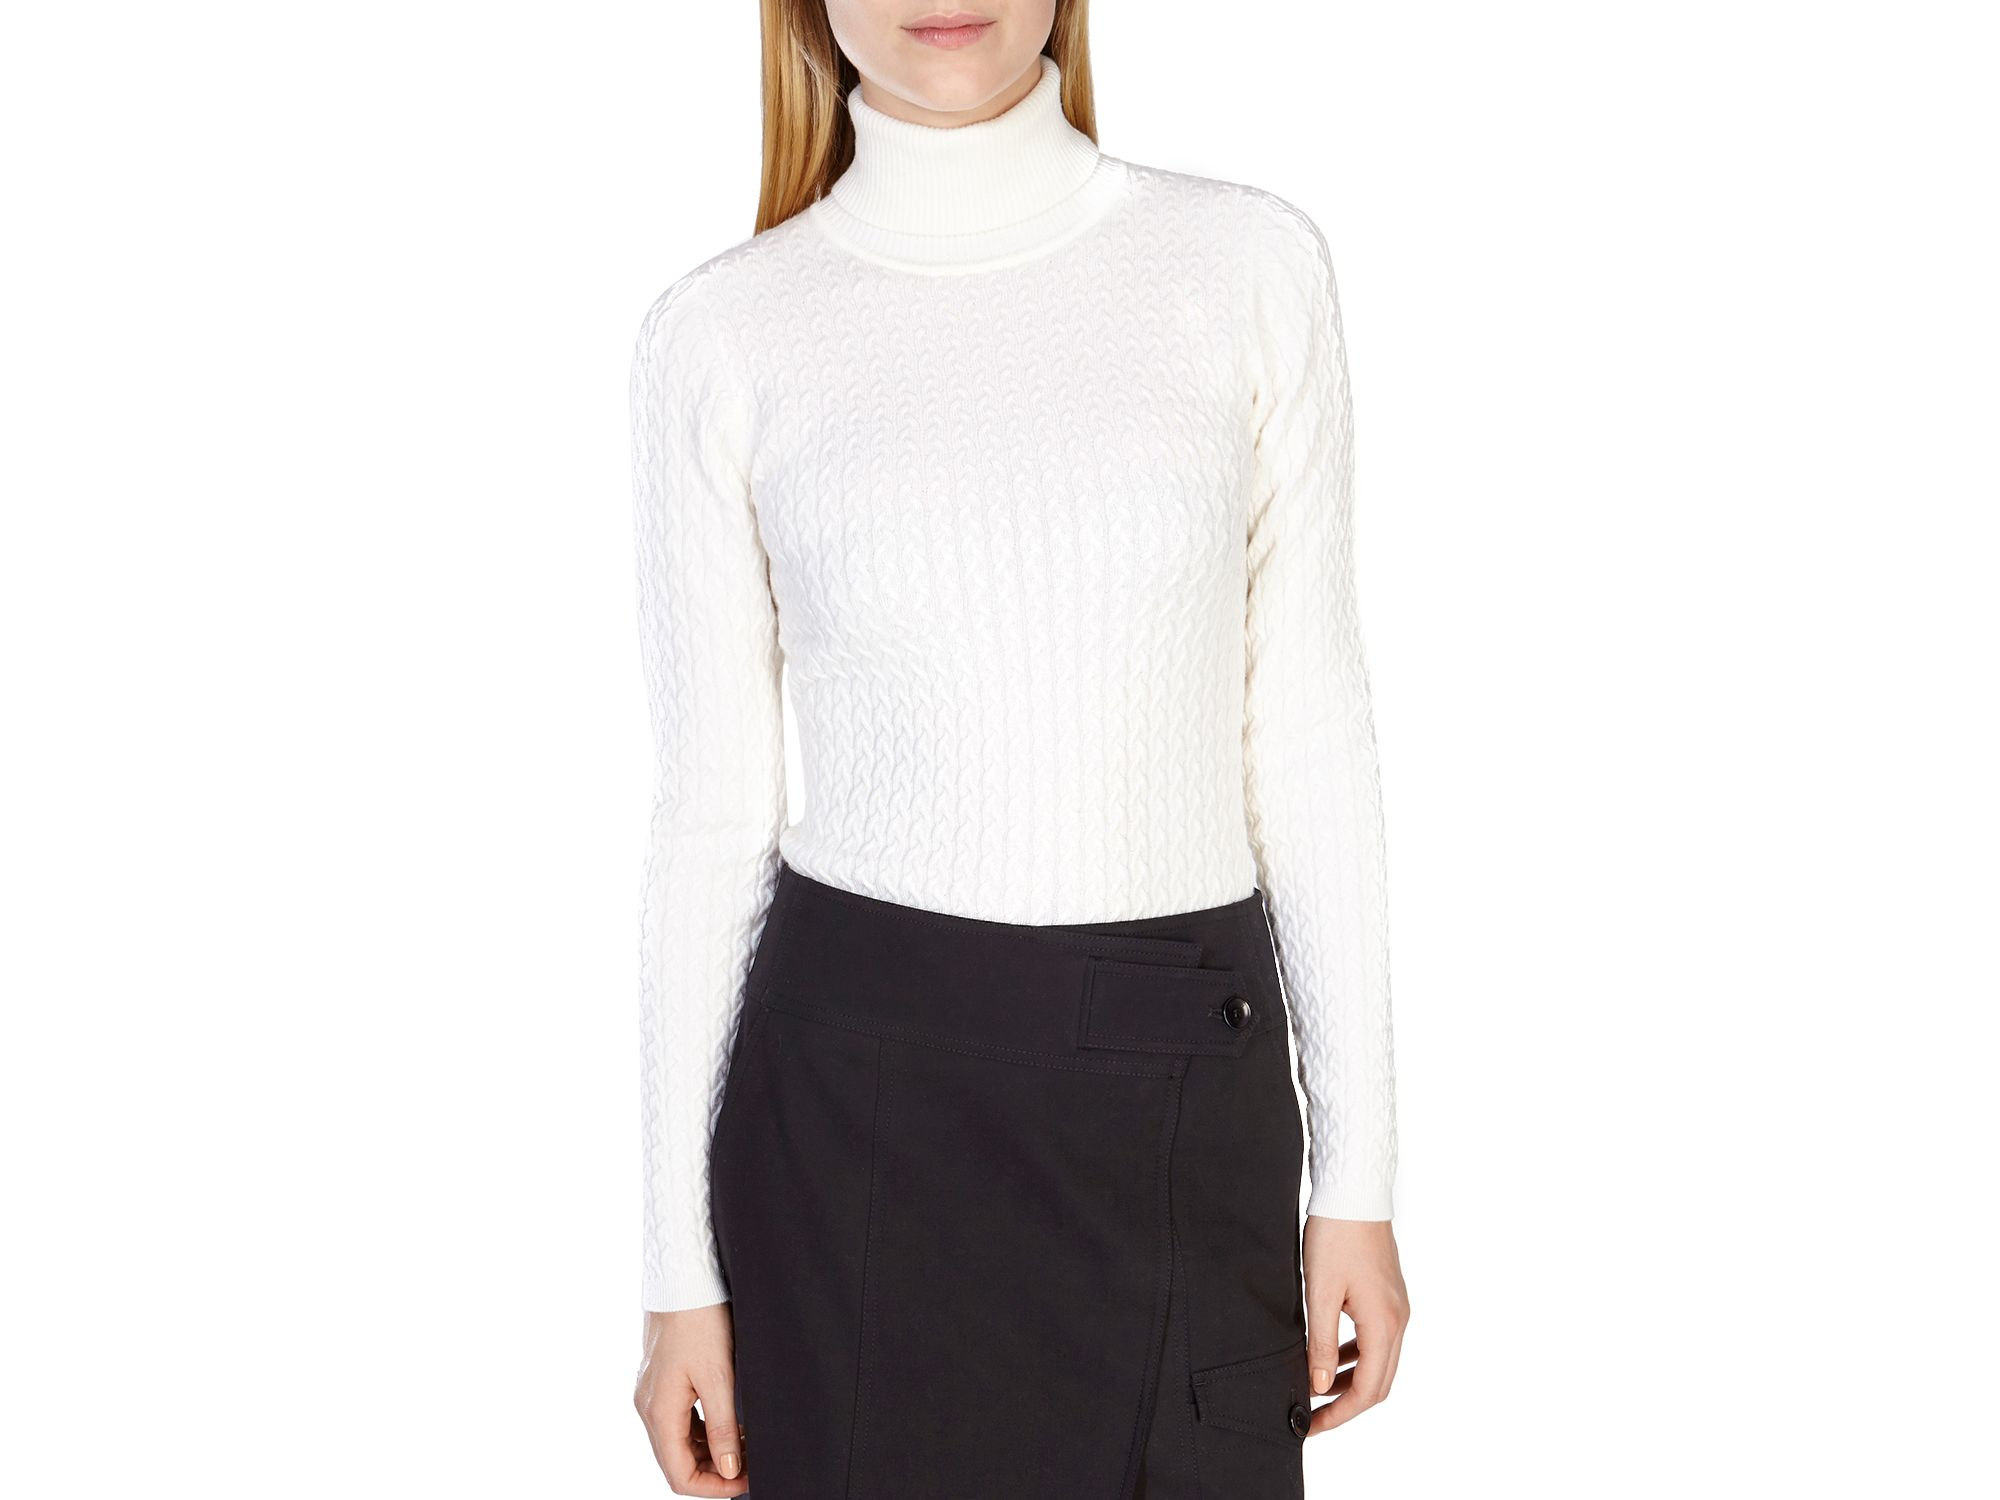 Karen millen Fine Gauge Cable Knit Sweater in White | Lyst